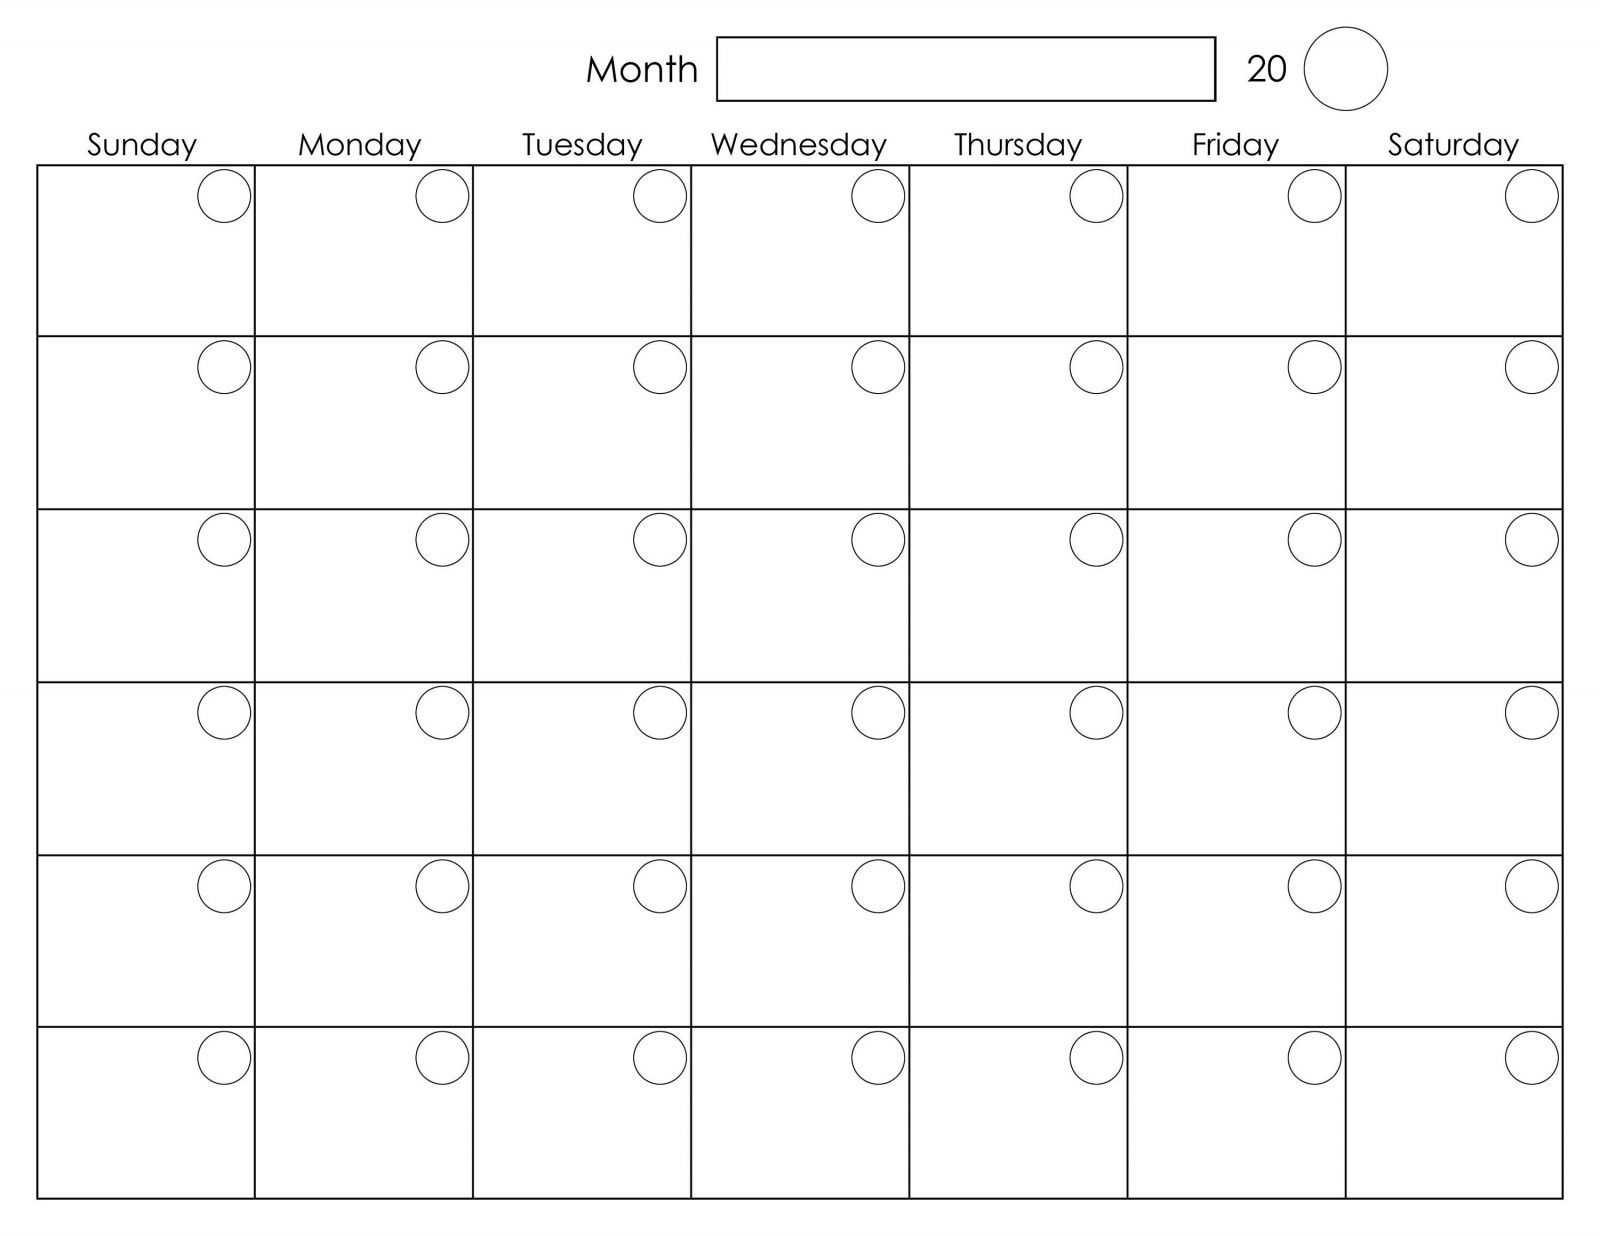 Free Blank Printable Calendar 2019 With Holidays Template-Monday To Friday Monthly Calendar Template